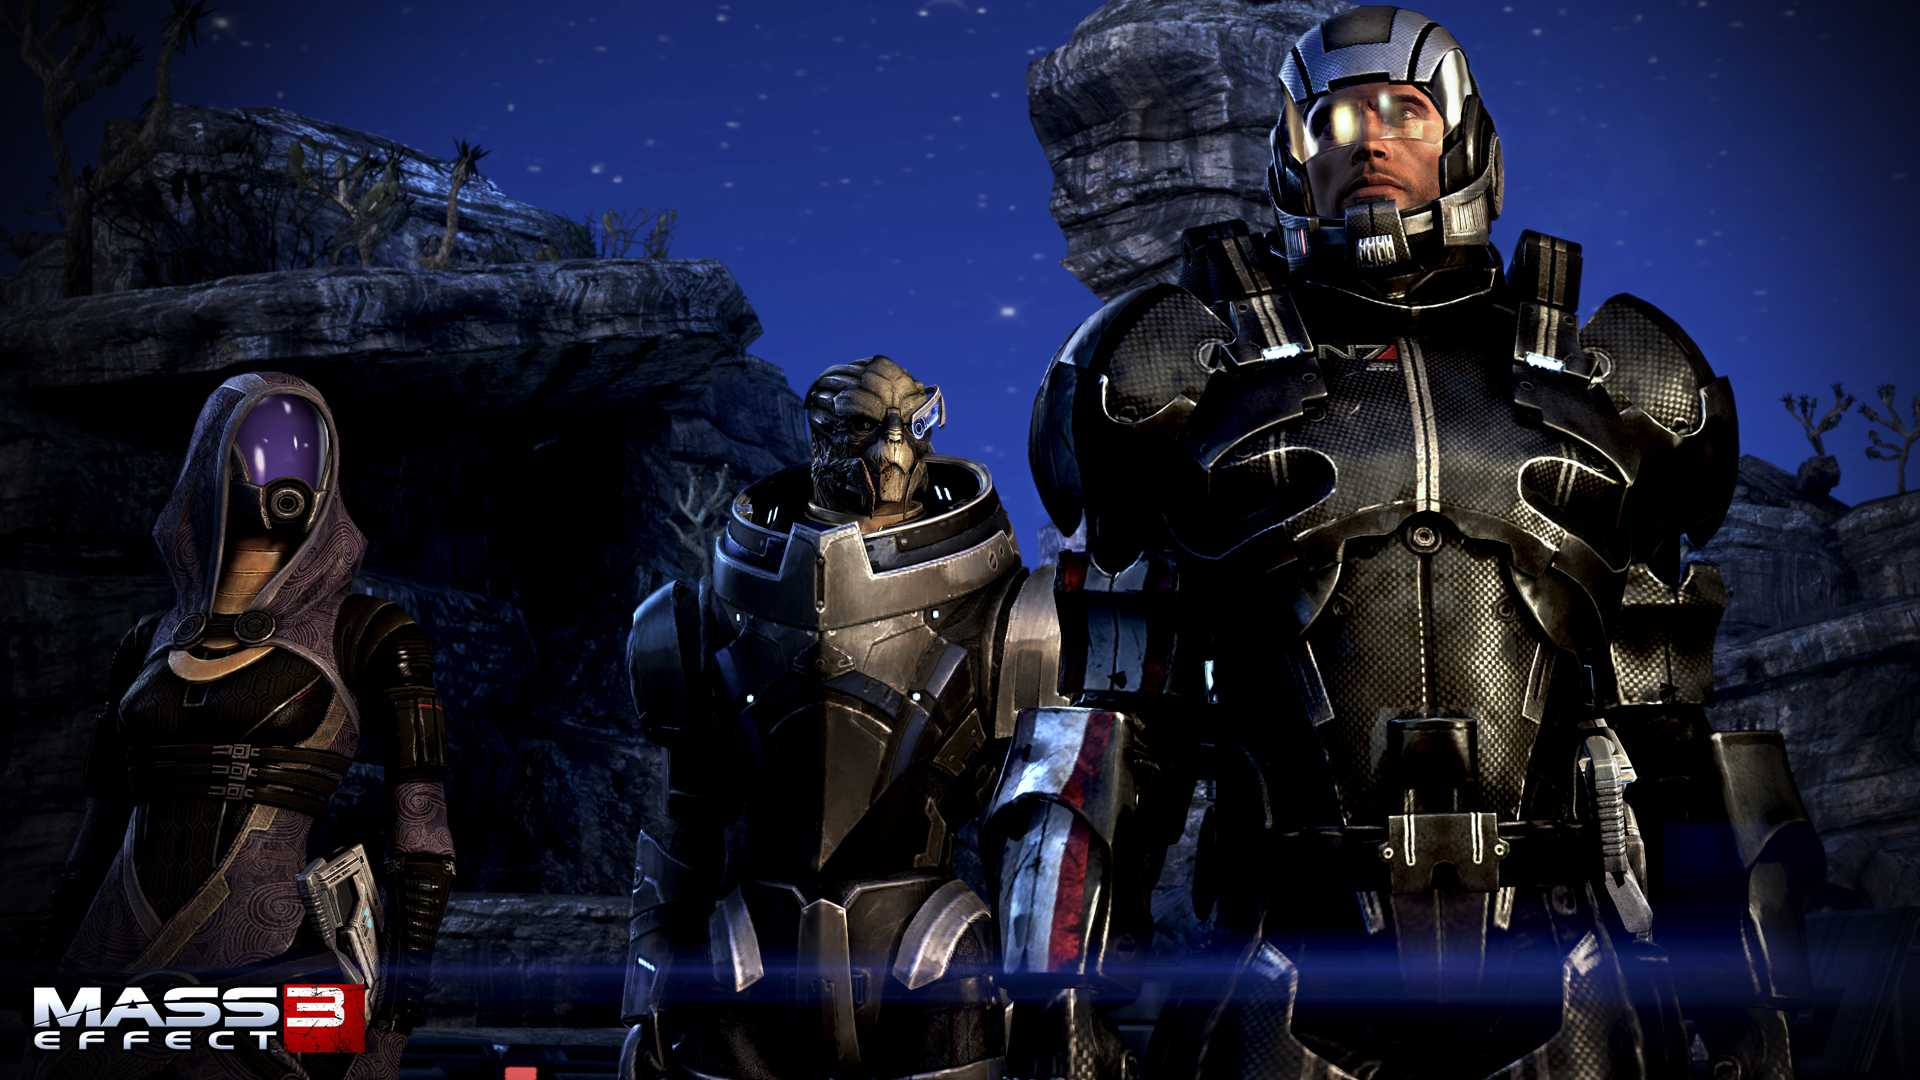 Aztec Gaming: Mass Effect 3 demo on February 14th